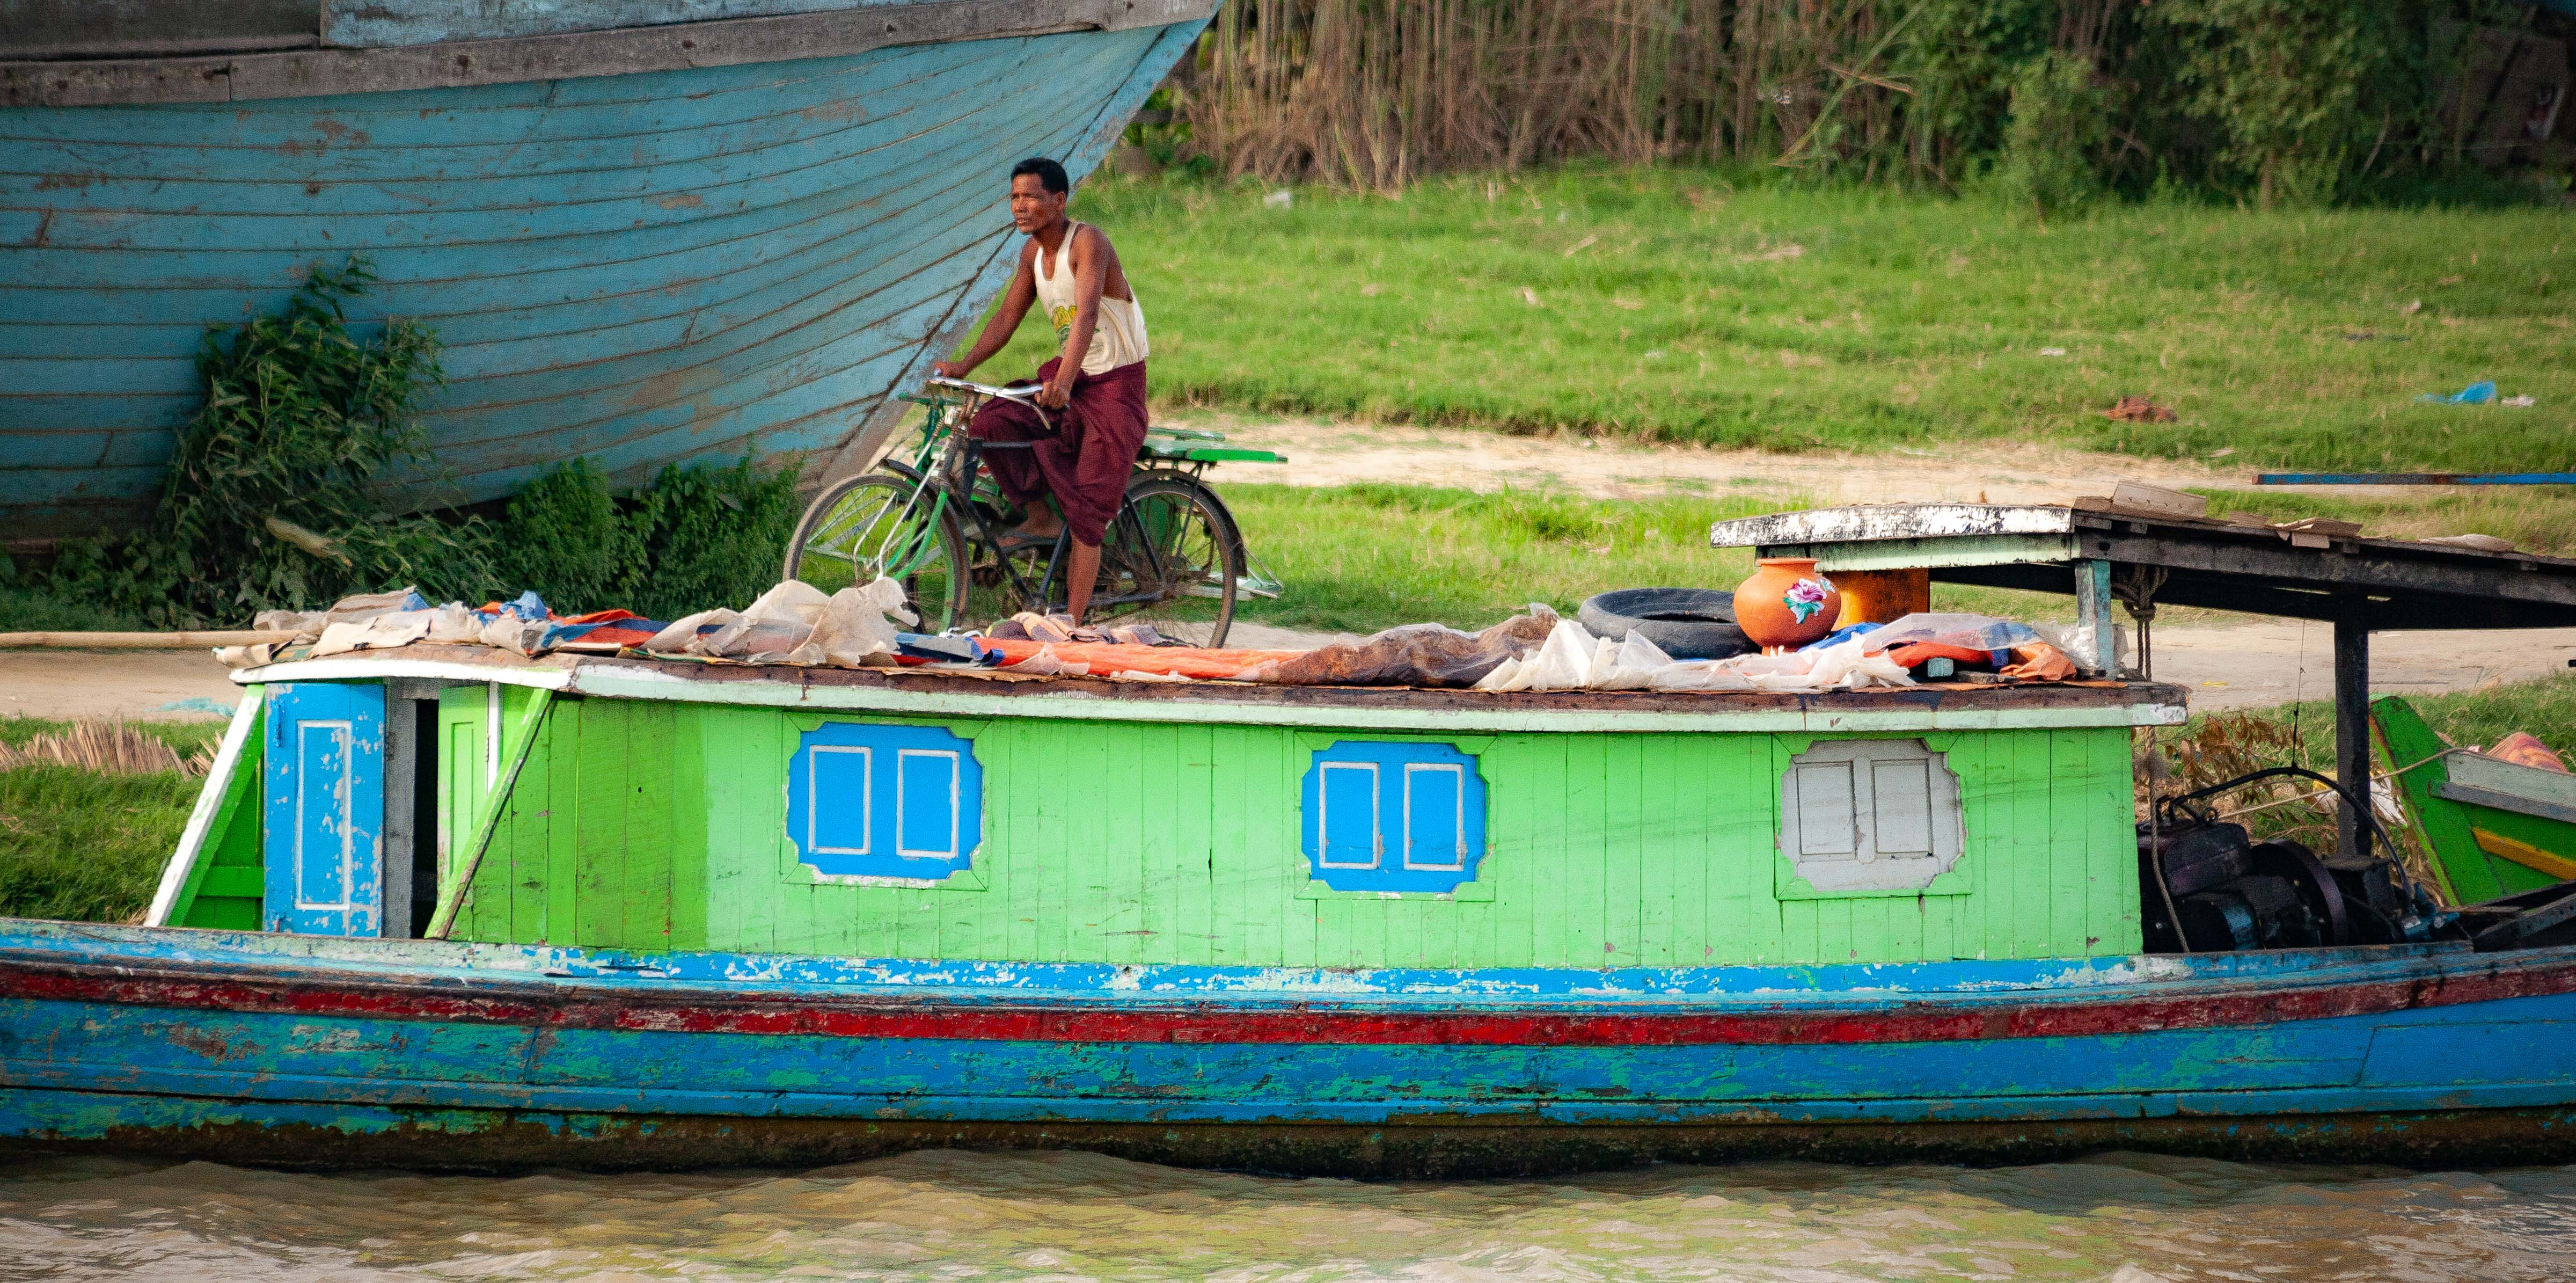 Myanmar, Unknown Prov, Boats River, 2009, IMG 3871